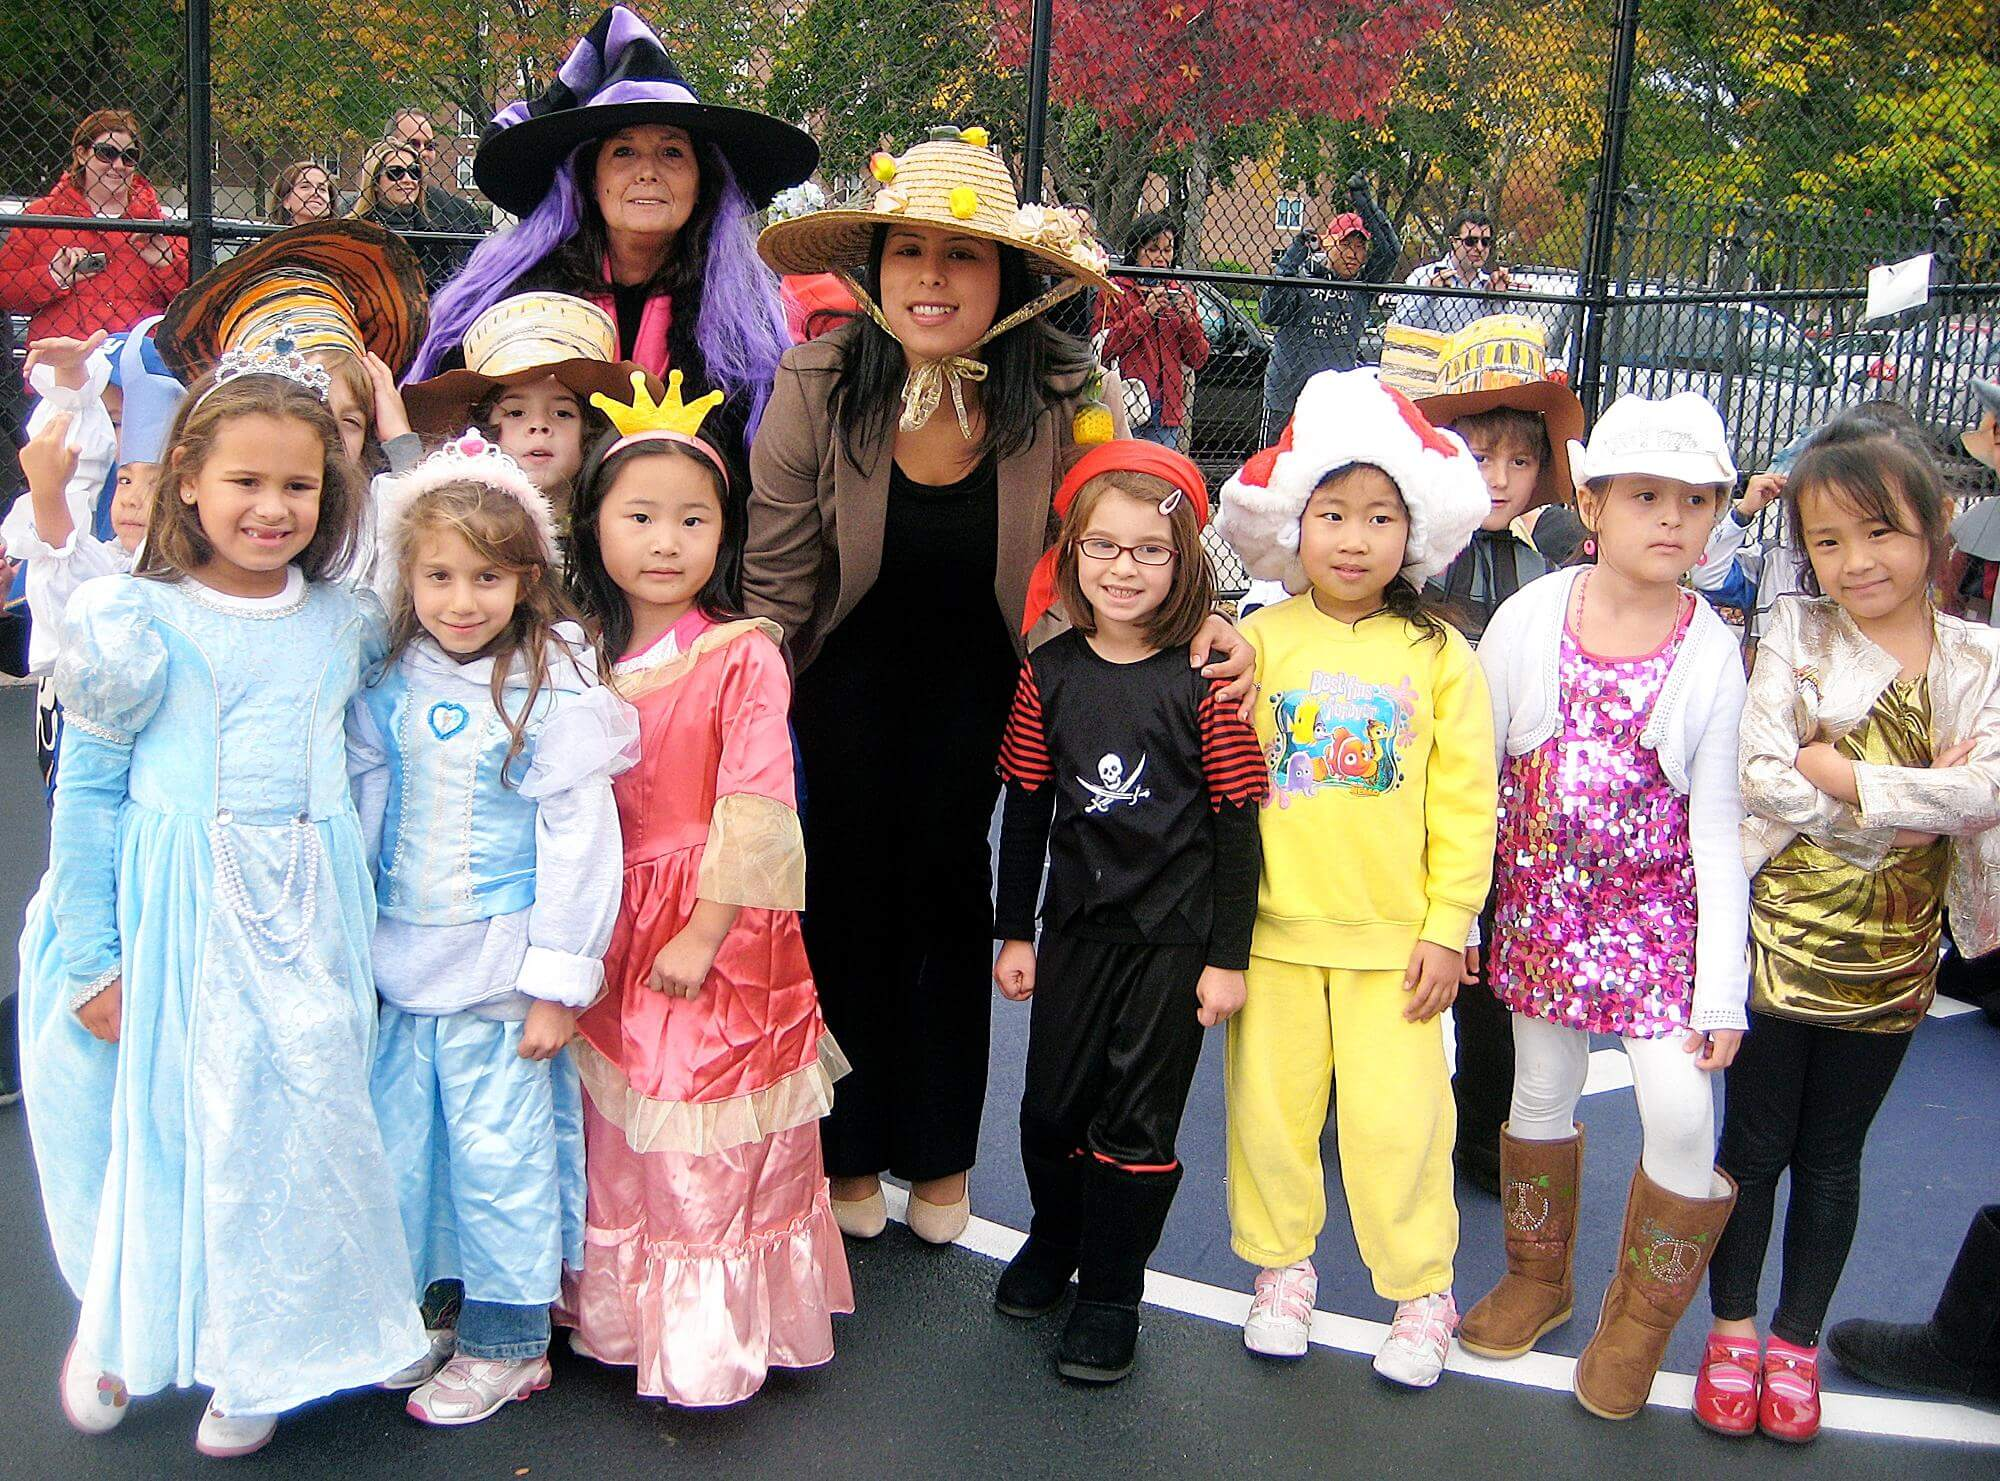 Elementary School Students Go Mad At Halloween Parade